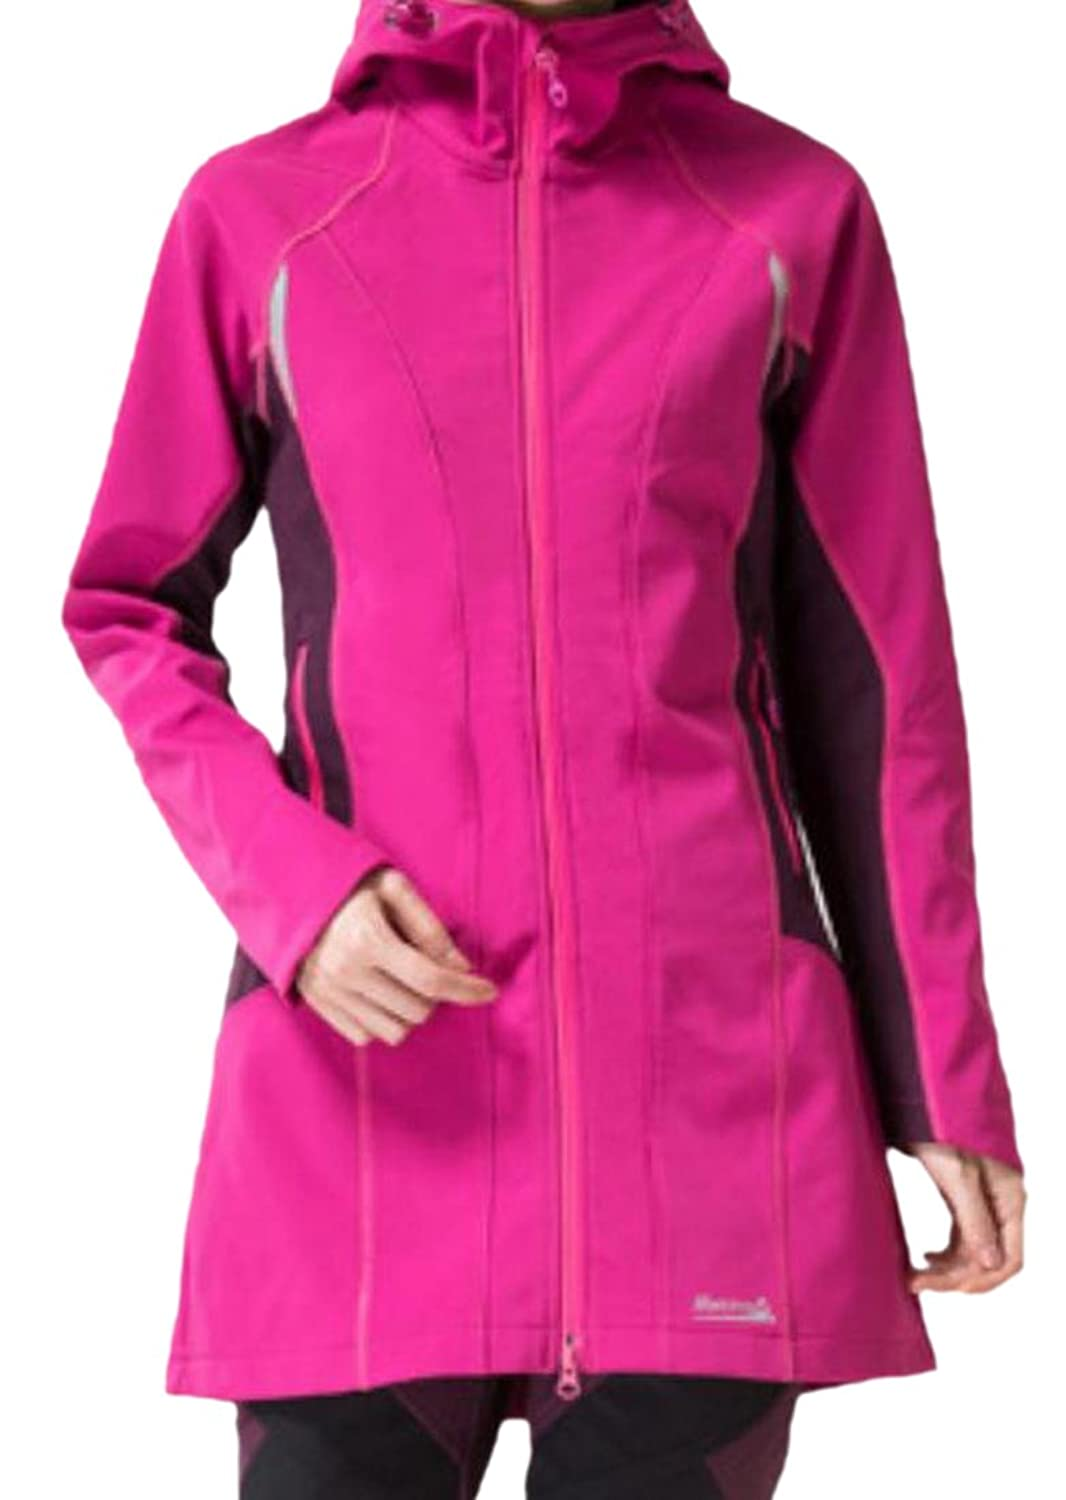 Honey GD Women's Windproof Waterproof Hooded Jacket Windproof Coat